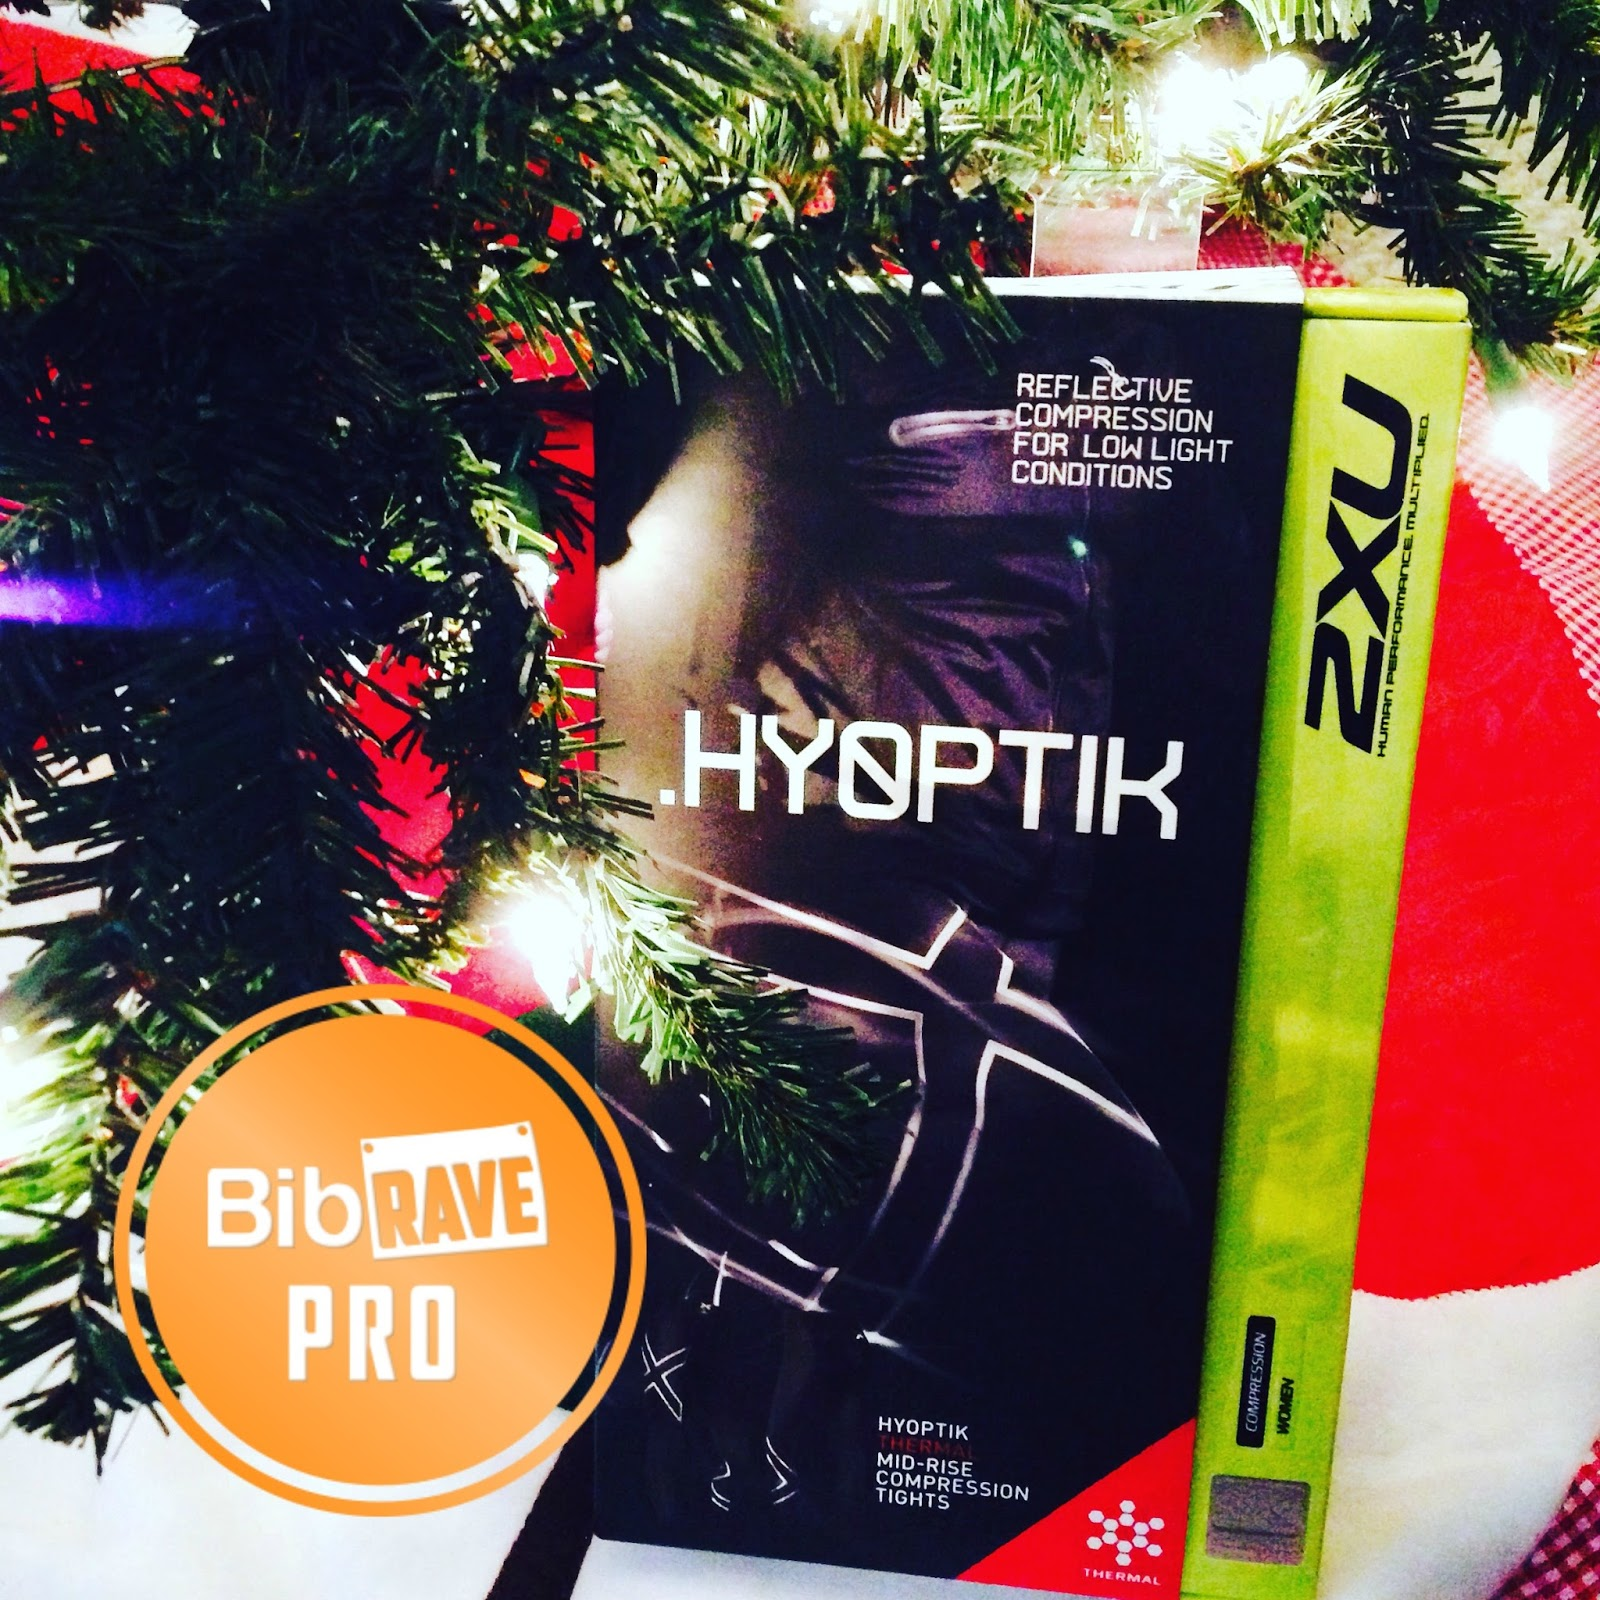 6f144682be62d Have you ever found a product that you love and can't stop telling everyone  about? That's how I feel about the 2XU HYOPTIK Thermal Compression Tights!